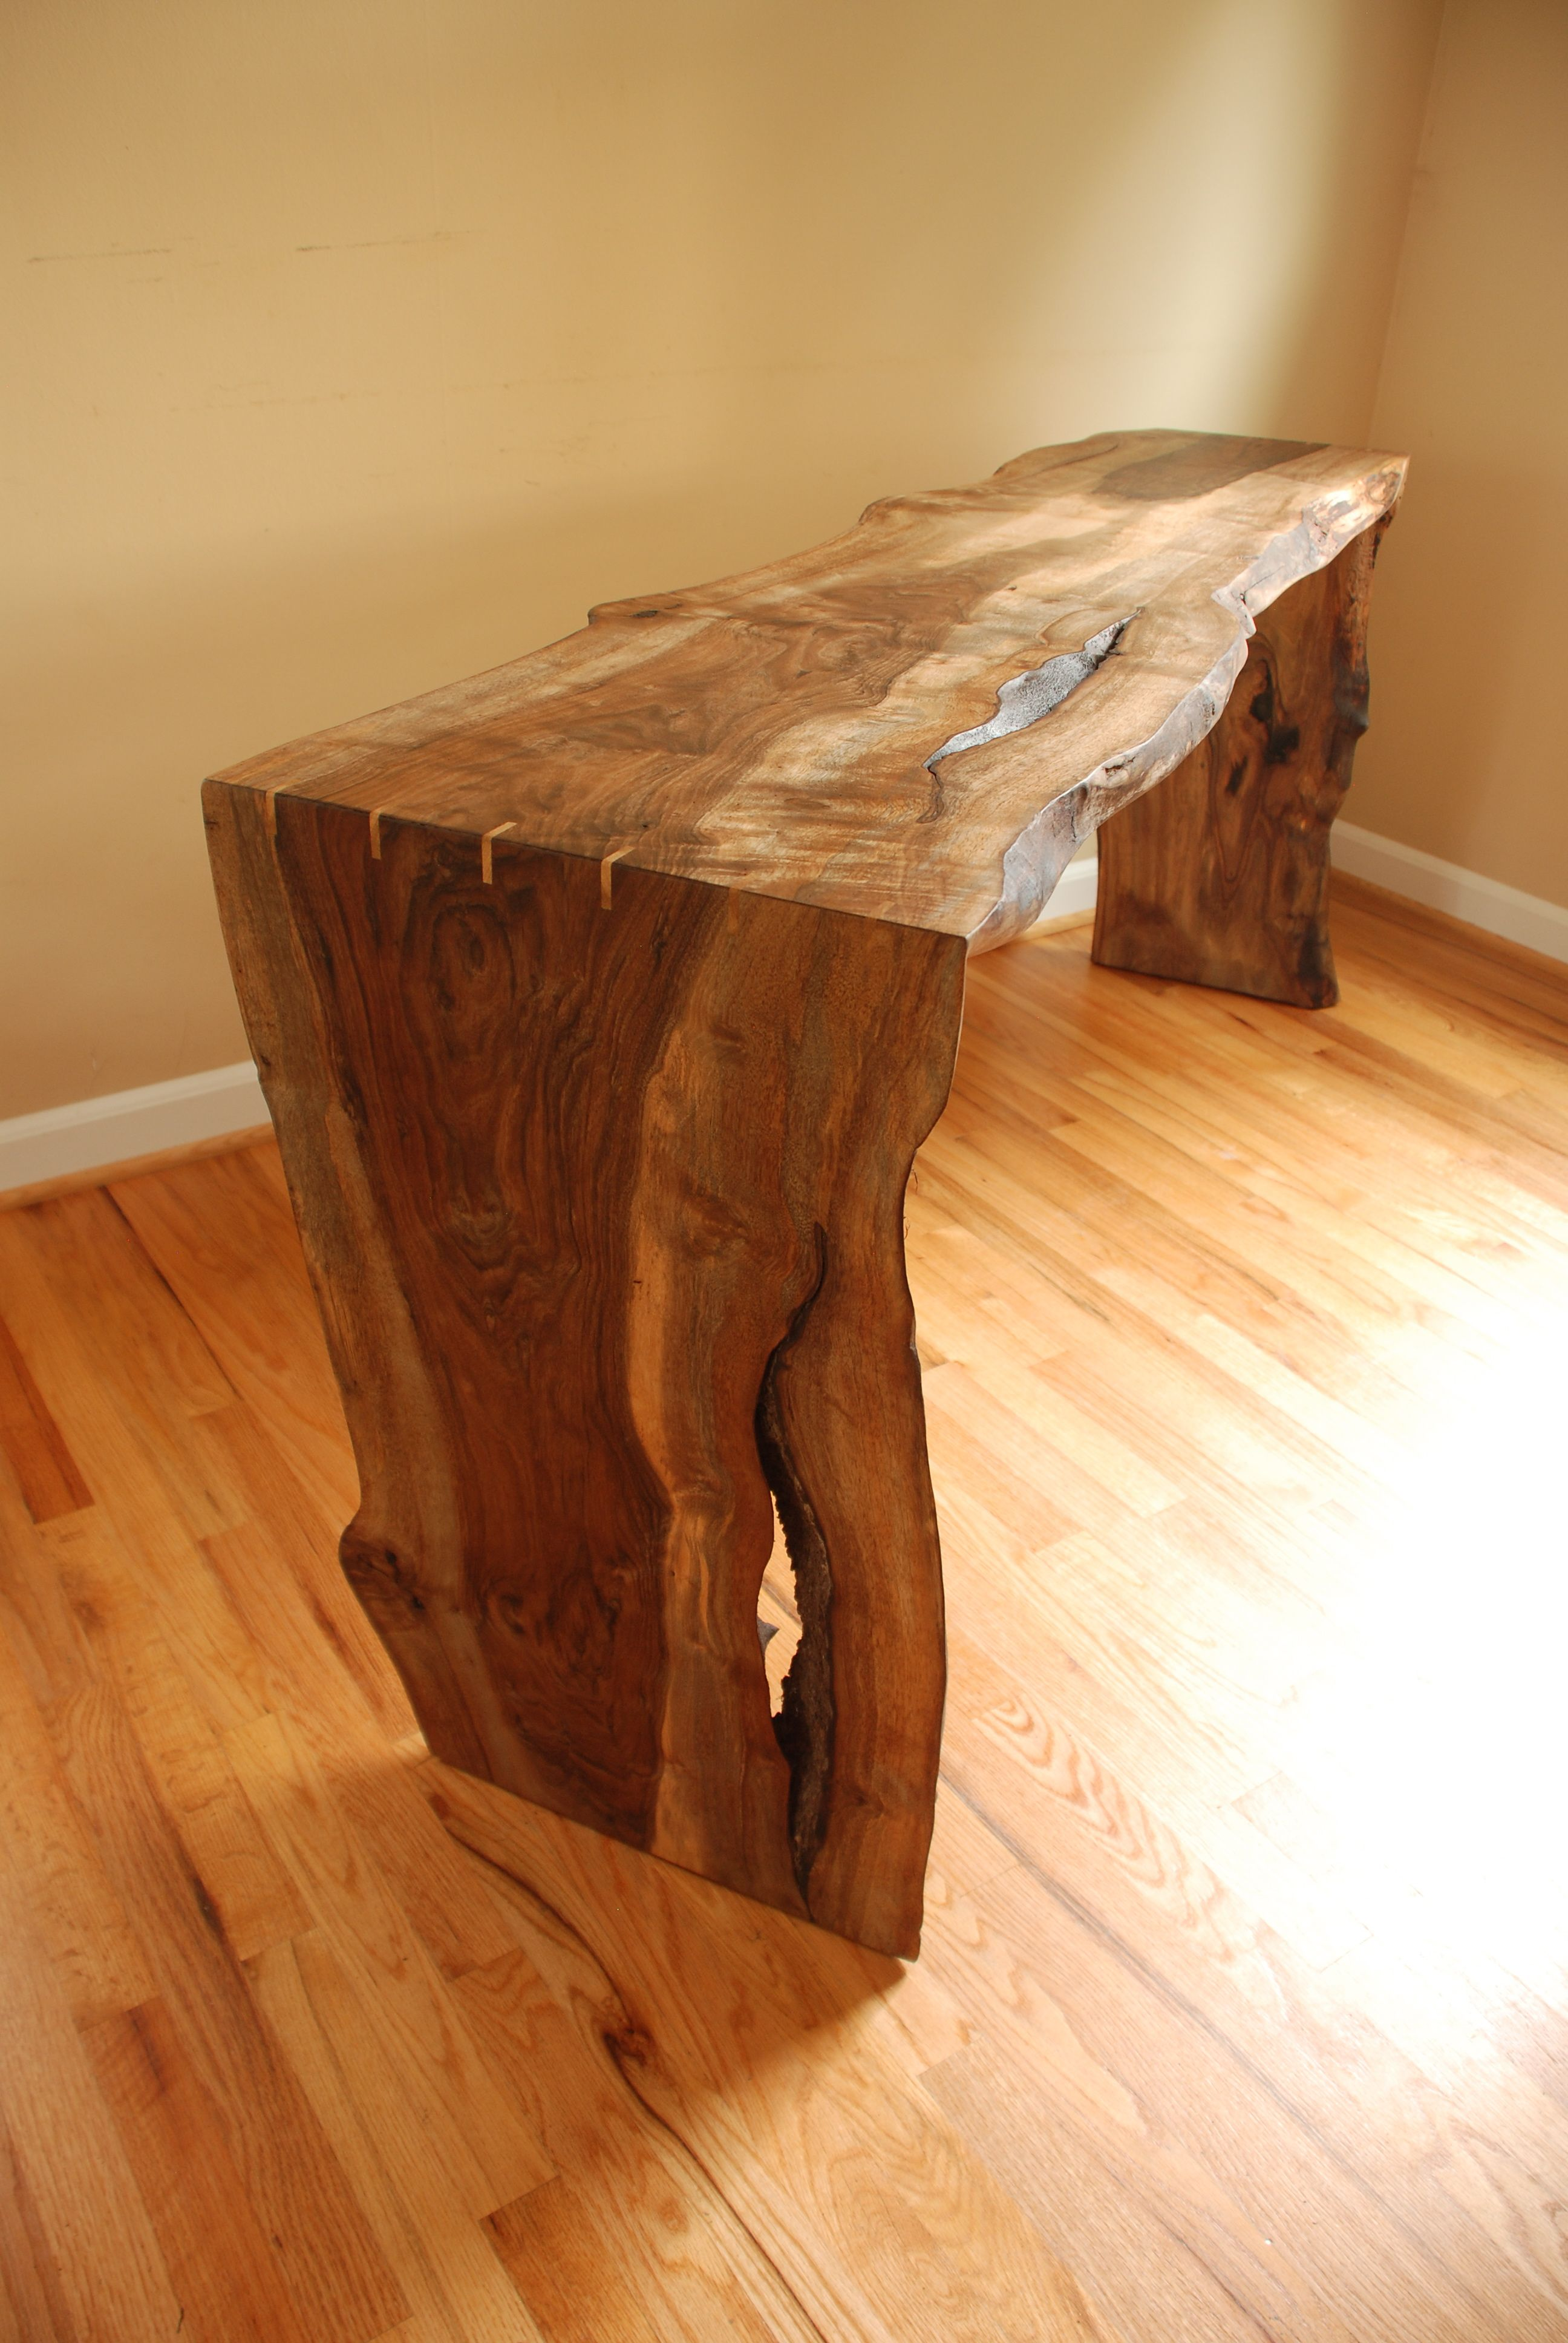 furniture portfolio and bench edge barn view table barnwoodtablebench at live amish walnut reclaimed wood creek